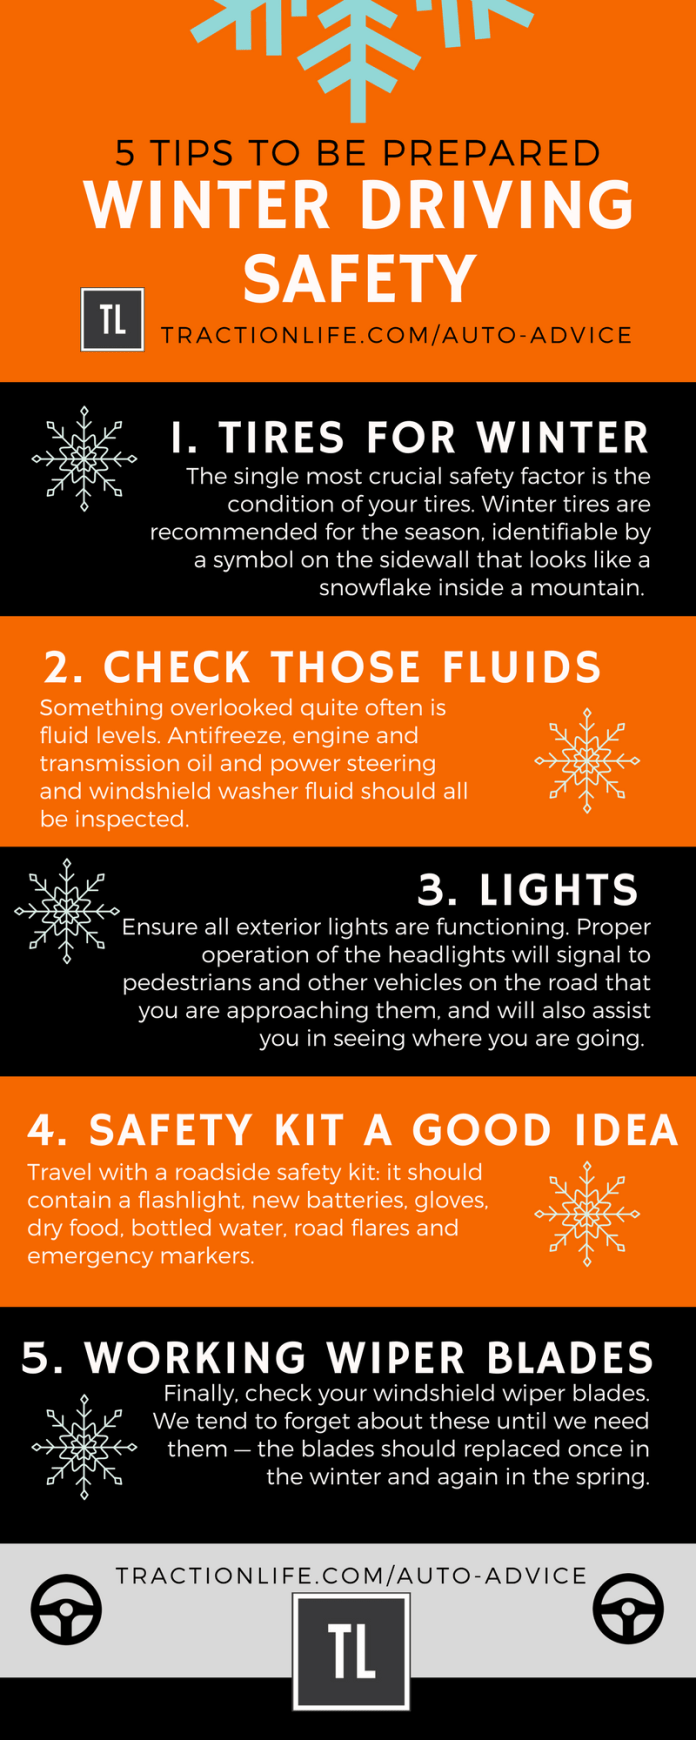 winter driving safety tips tractionlife